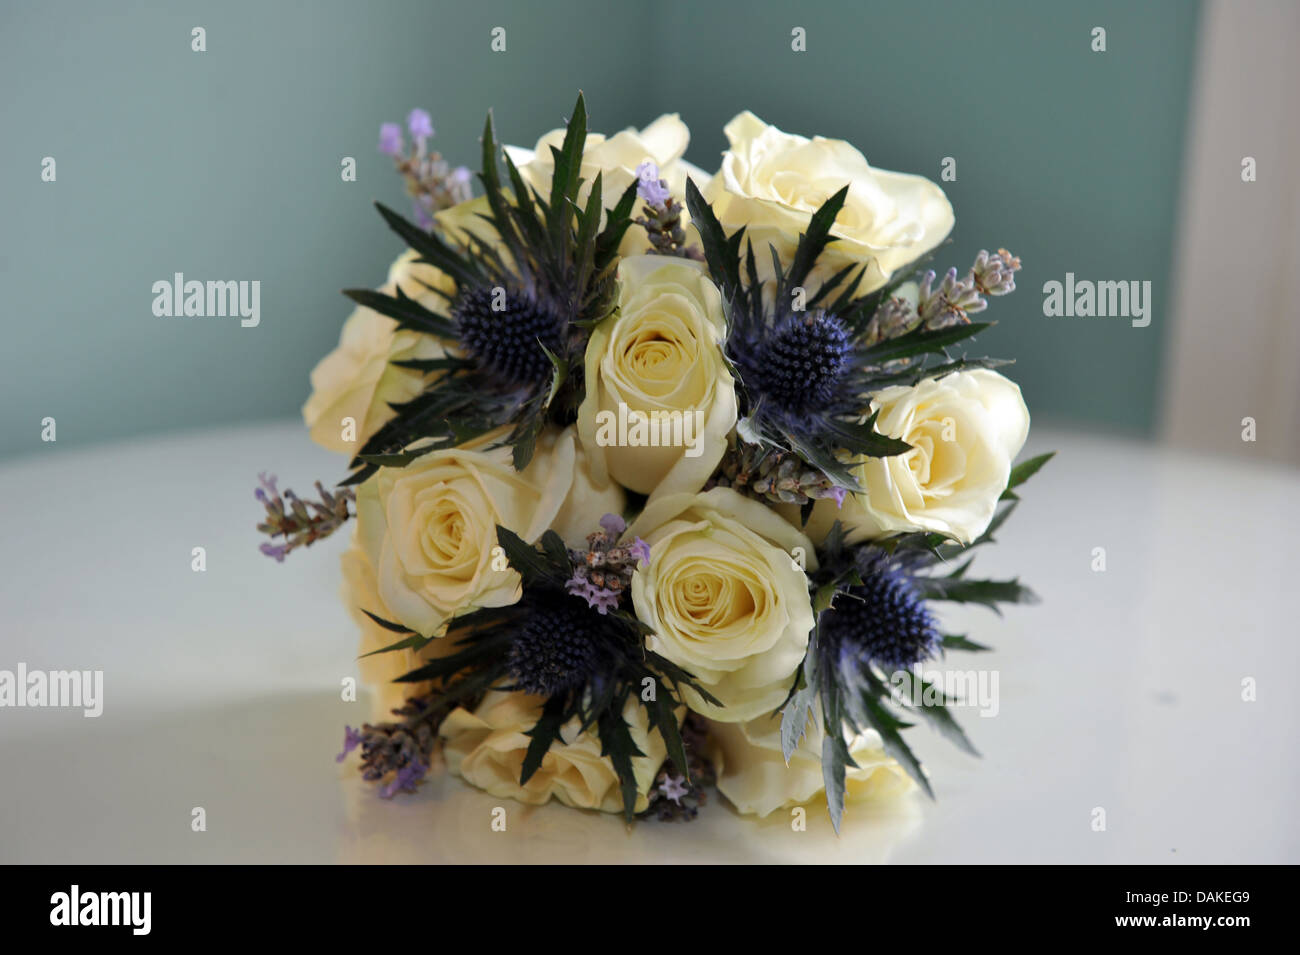 Wedding bouquet of white roses and purple heather stock photo wedding bouquet of white roses and purple heather izmirmasajfo